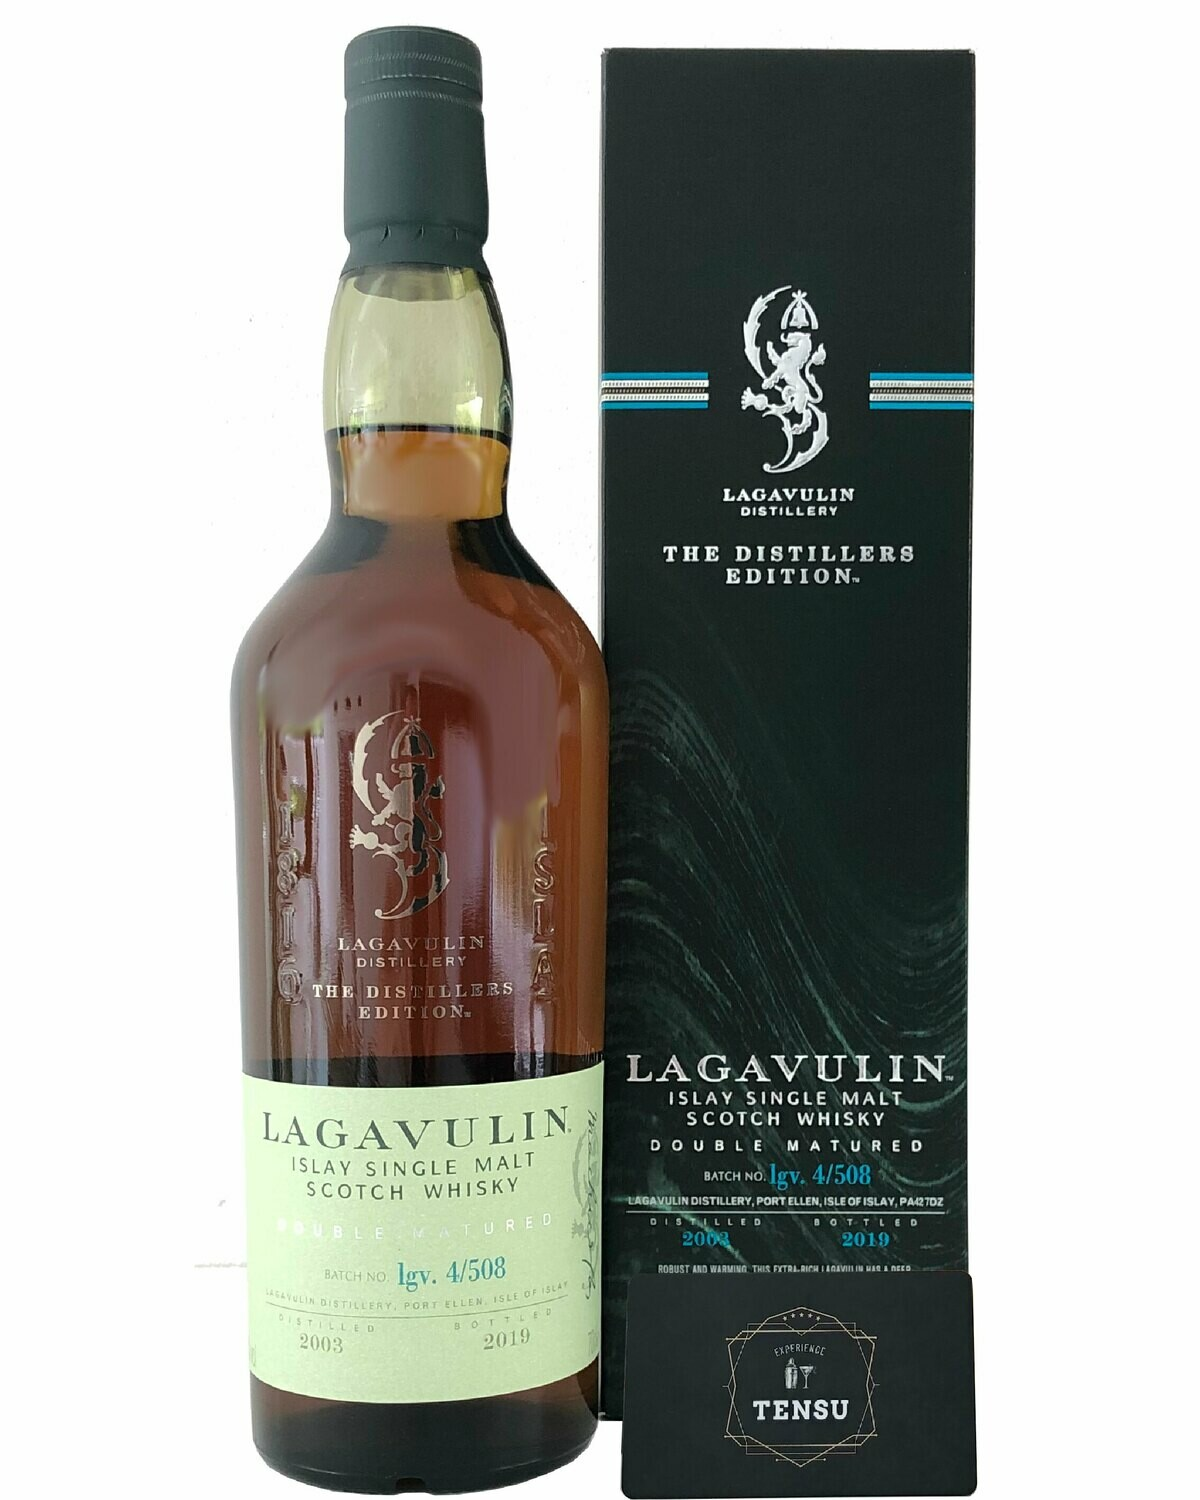 Lagavulin 16 Years Old - Distillers Edition (2003-2019)